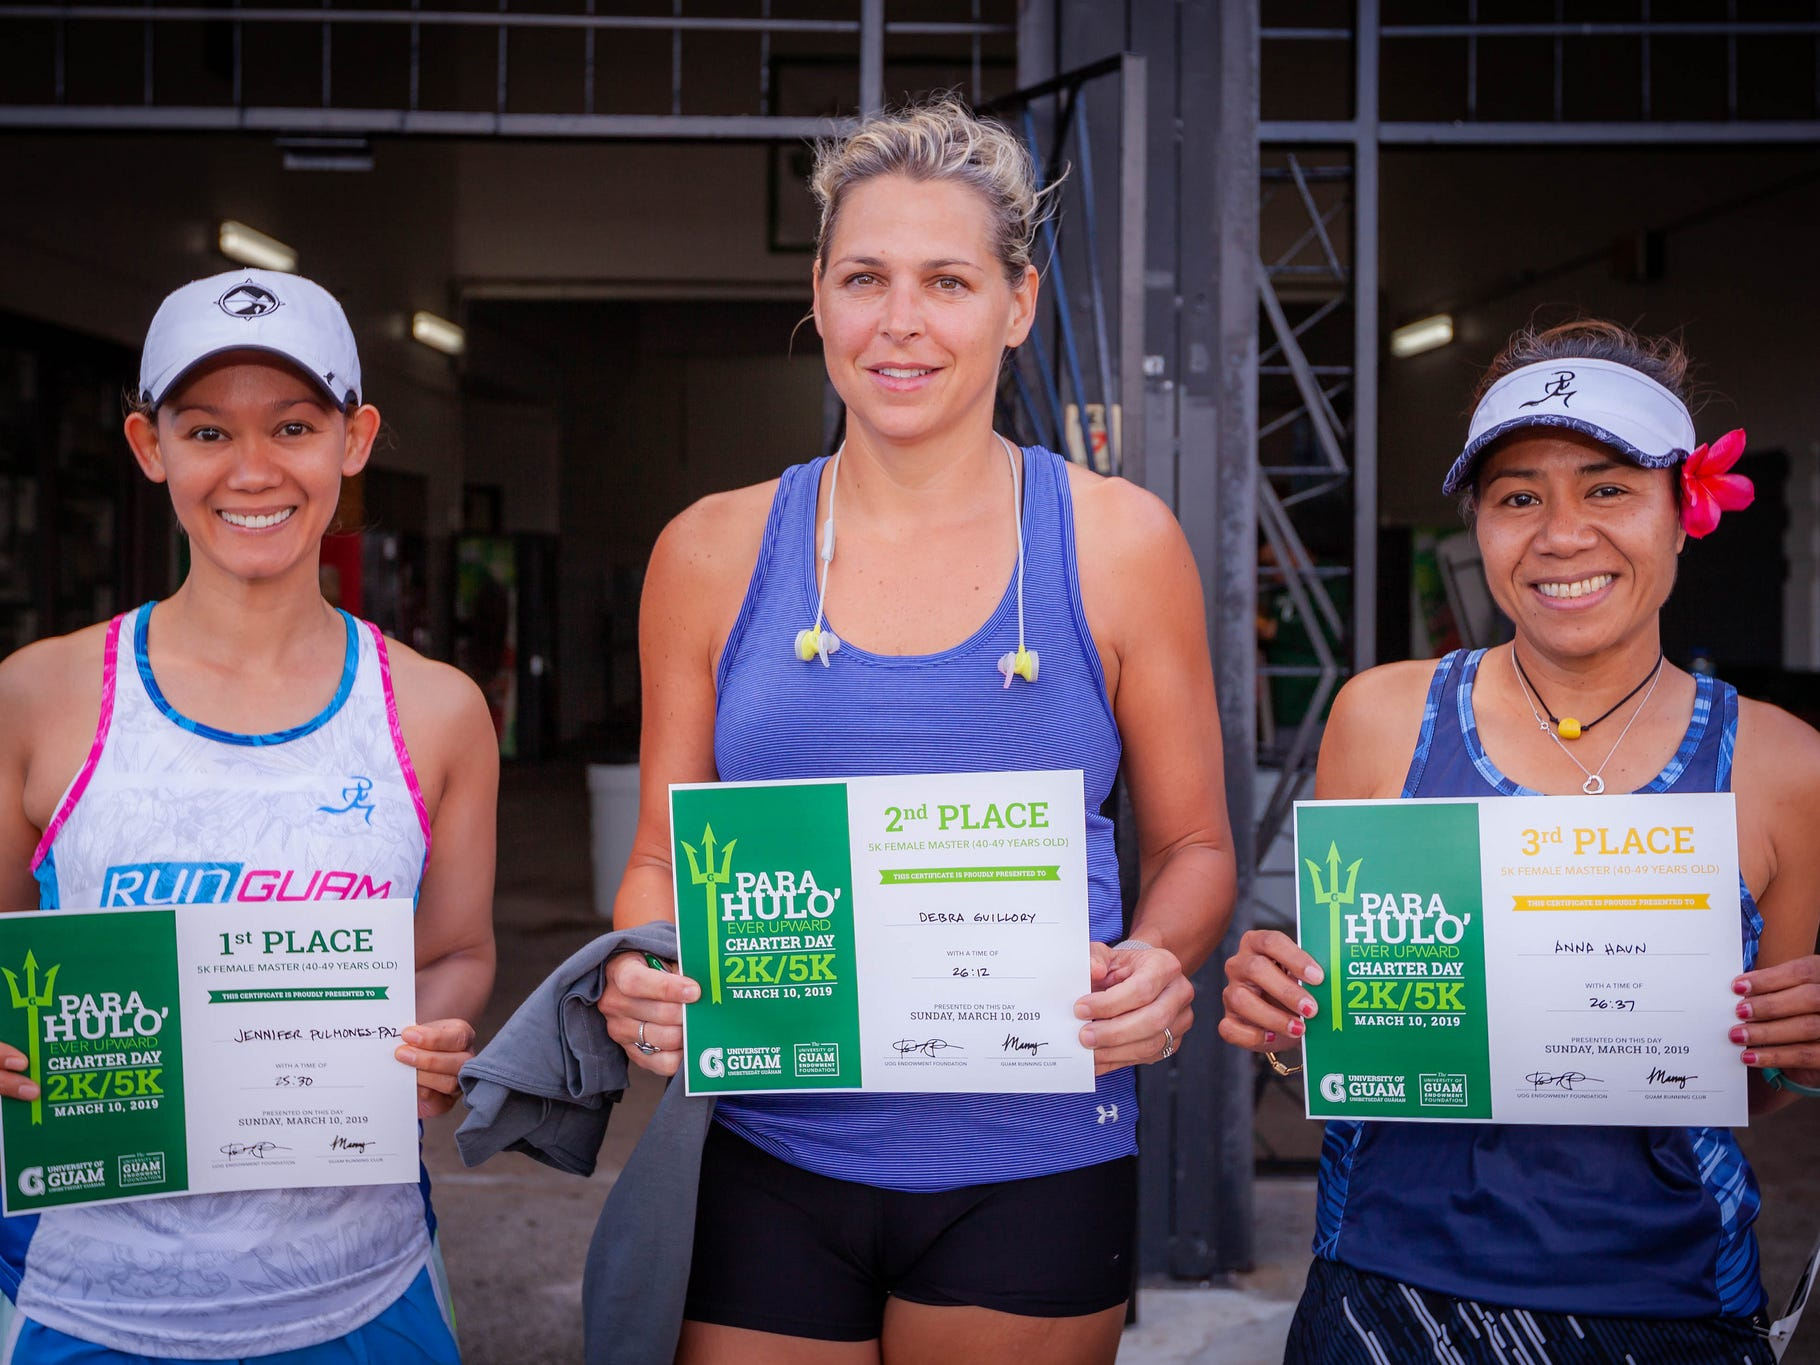 The top finishers in the University of Guam's Annual Charter Day 5K Women's Master Division, from left: Jennifer Pulmones-Paz; Debra Guillory; and Anna Haun. Pulmones-Paz was also the top female finisher overall.